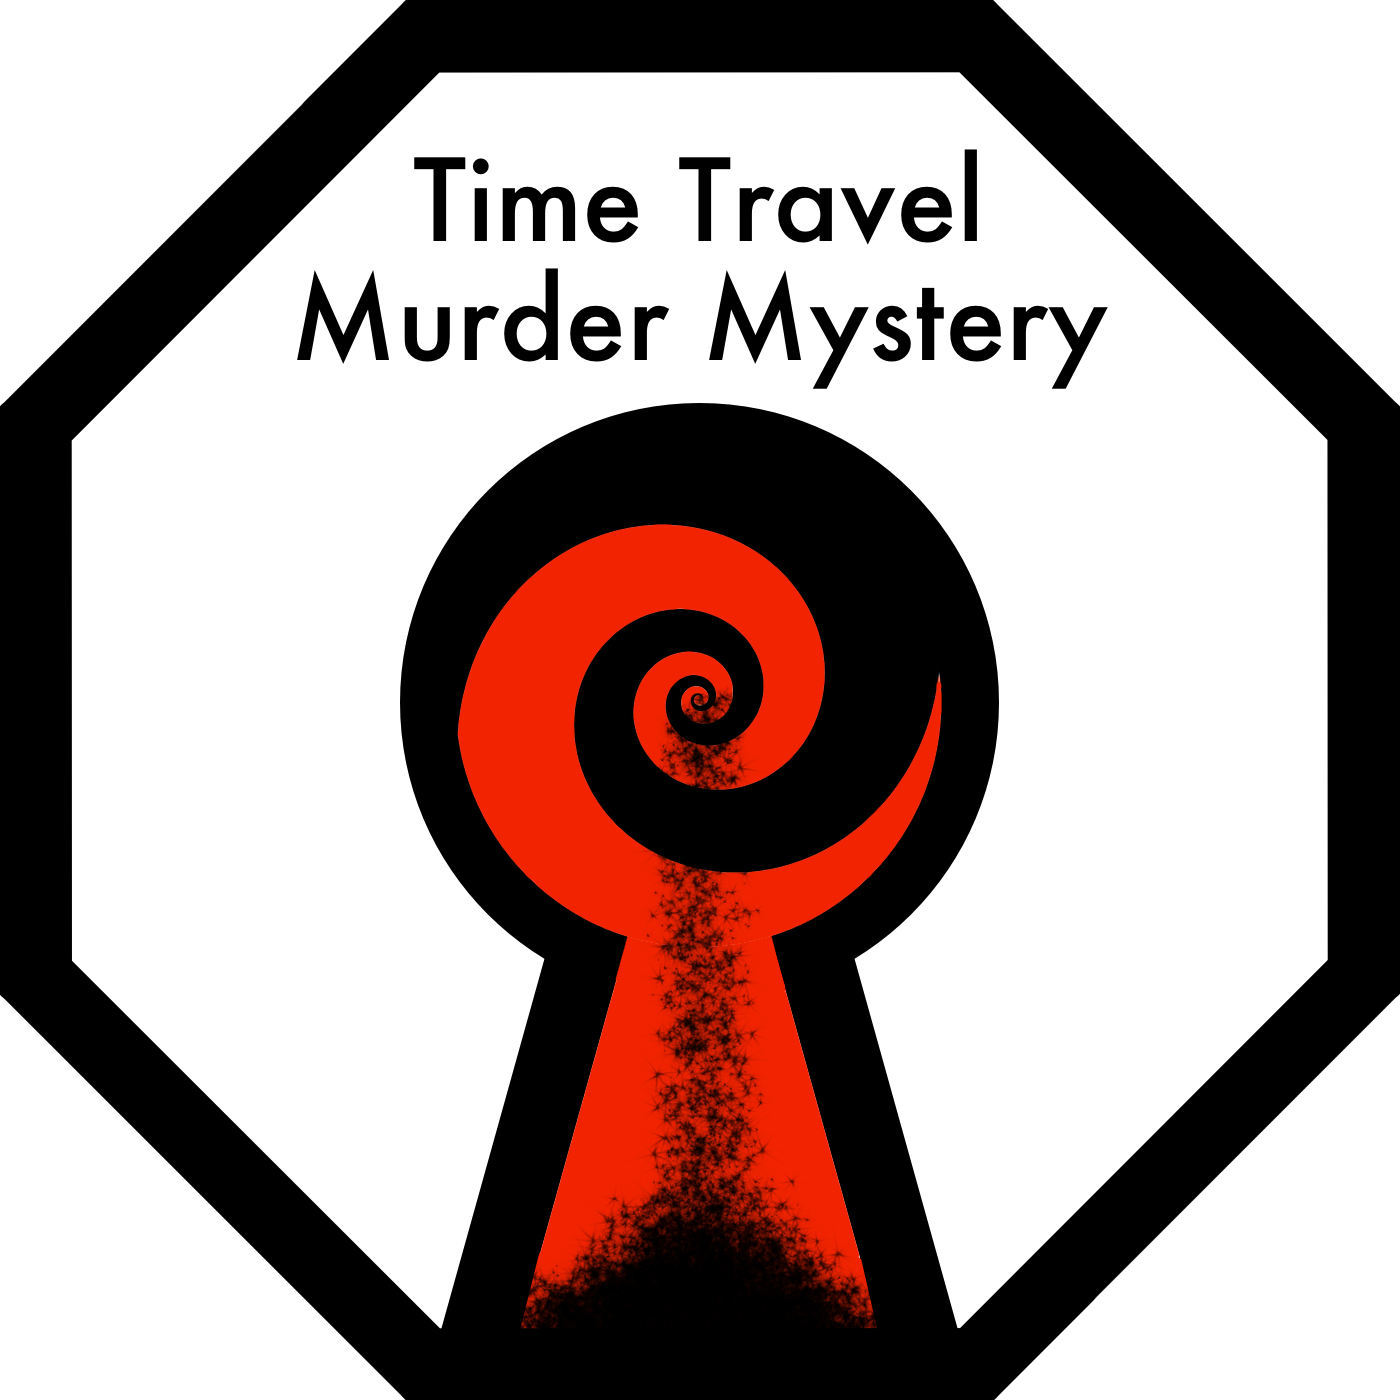 Time Travel Murder Mystery